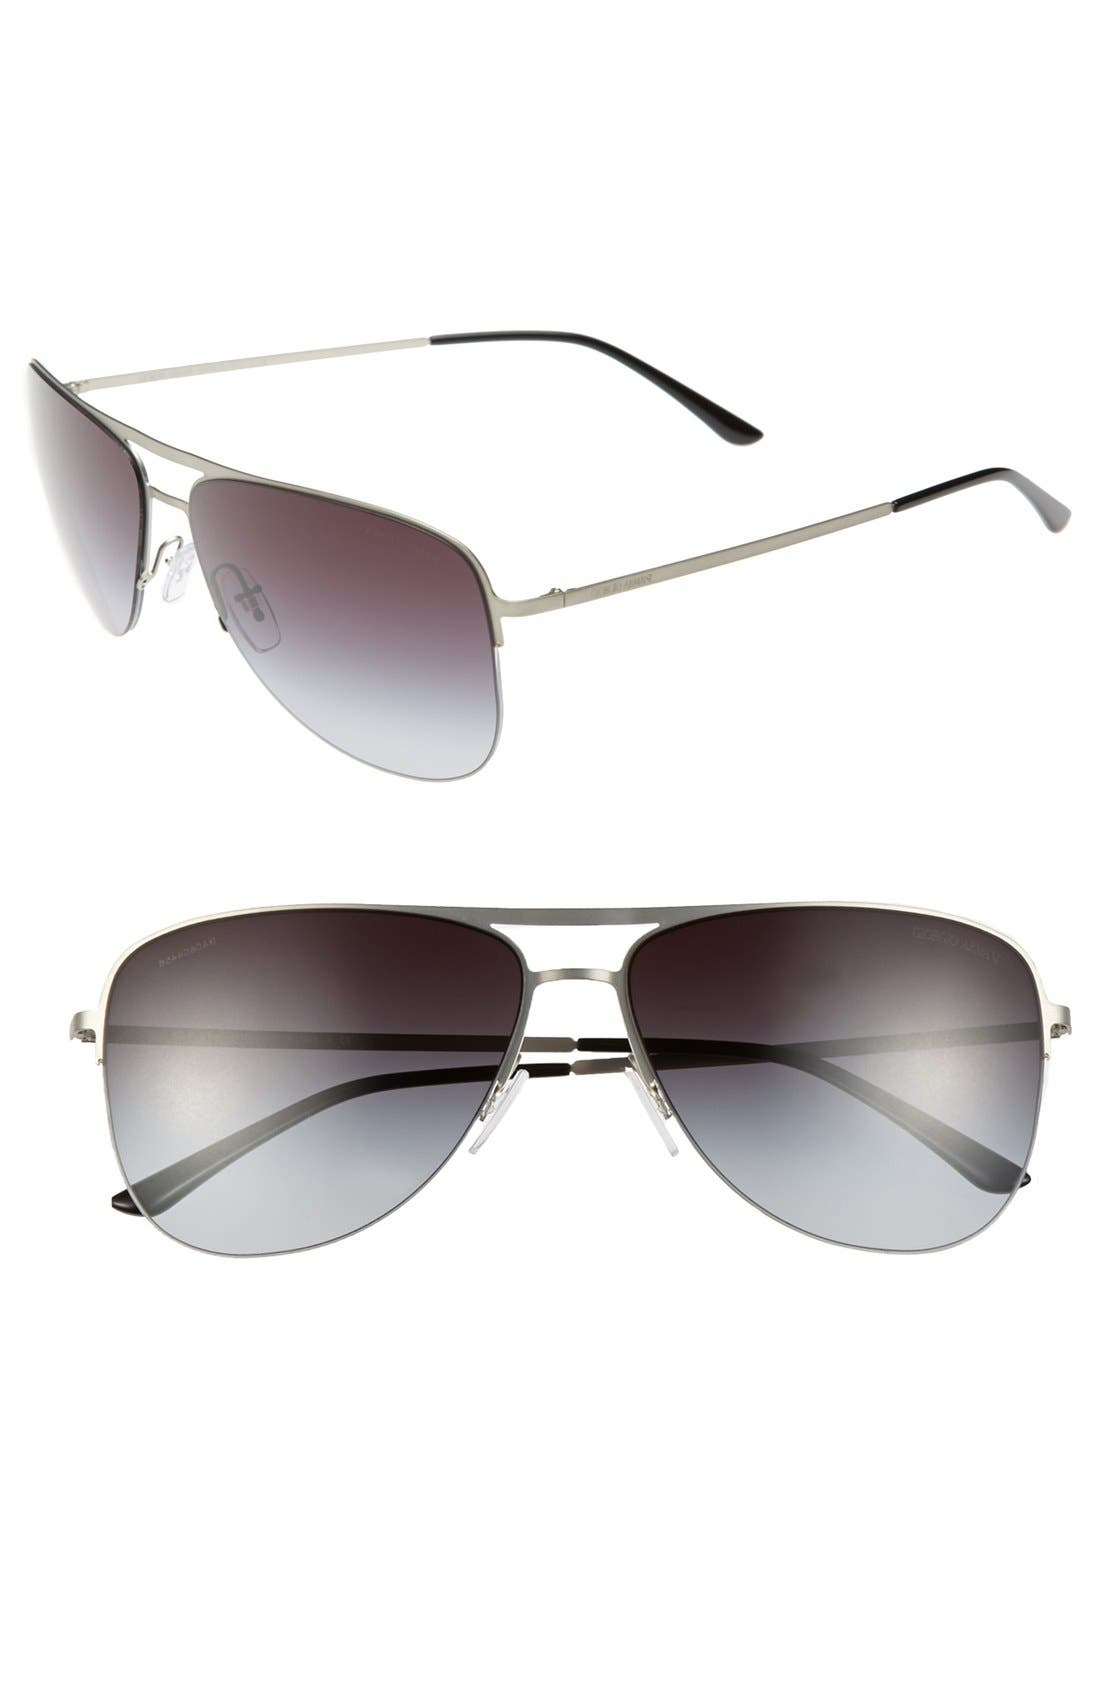 Main Image - Giorgio Armani 60mm Aviator Sunglasses